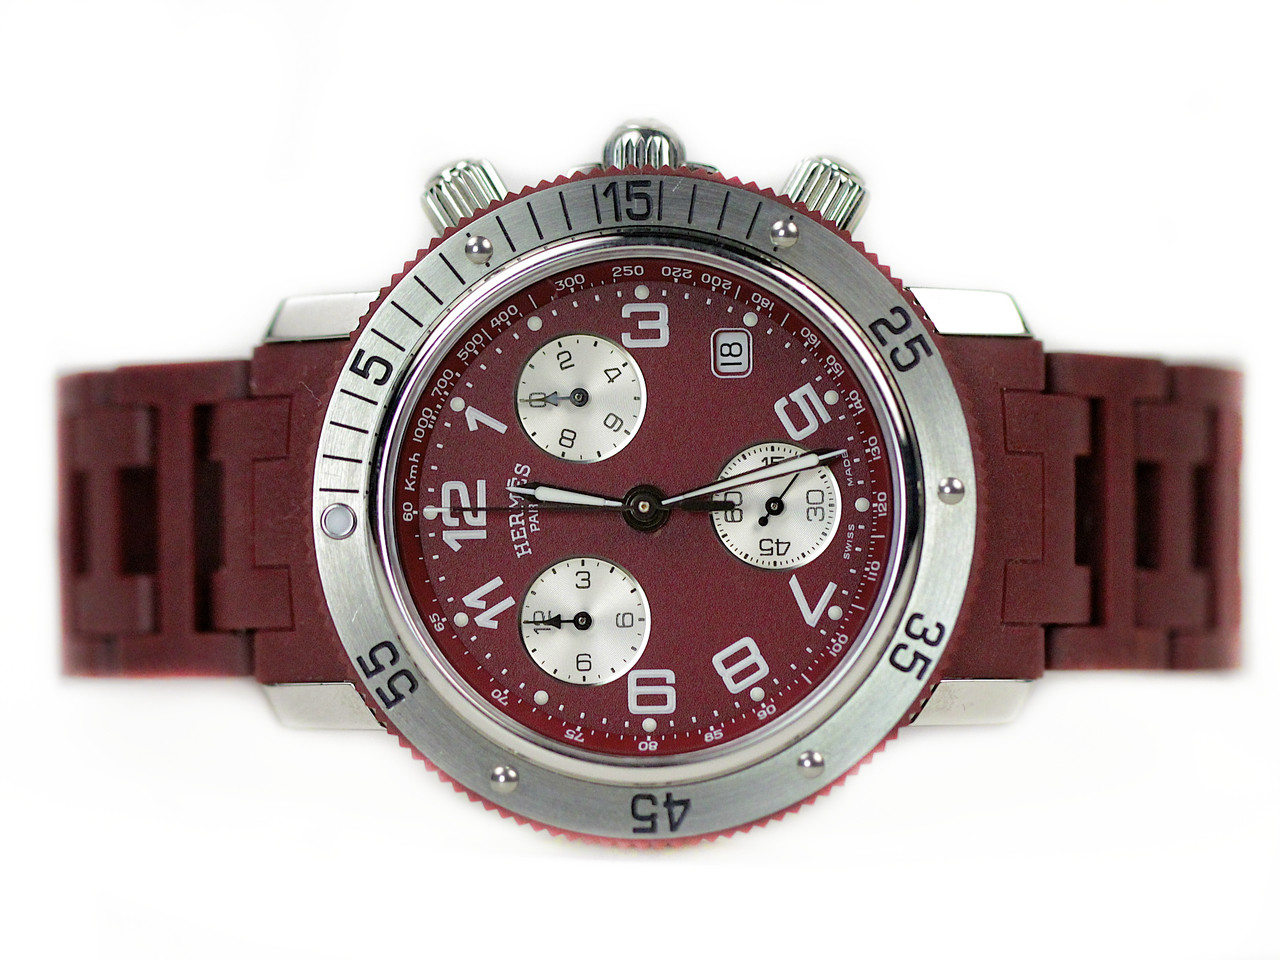 For Sale used Hermes Watch - Clipper Chronograph Diver CL2.918 Bordeaux online www.Legendoftime.com & in store Chicago Watch Center